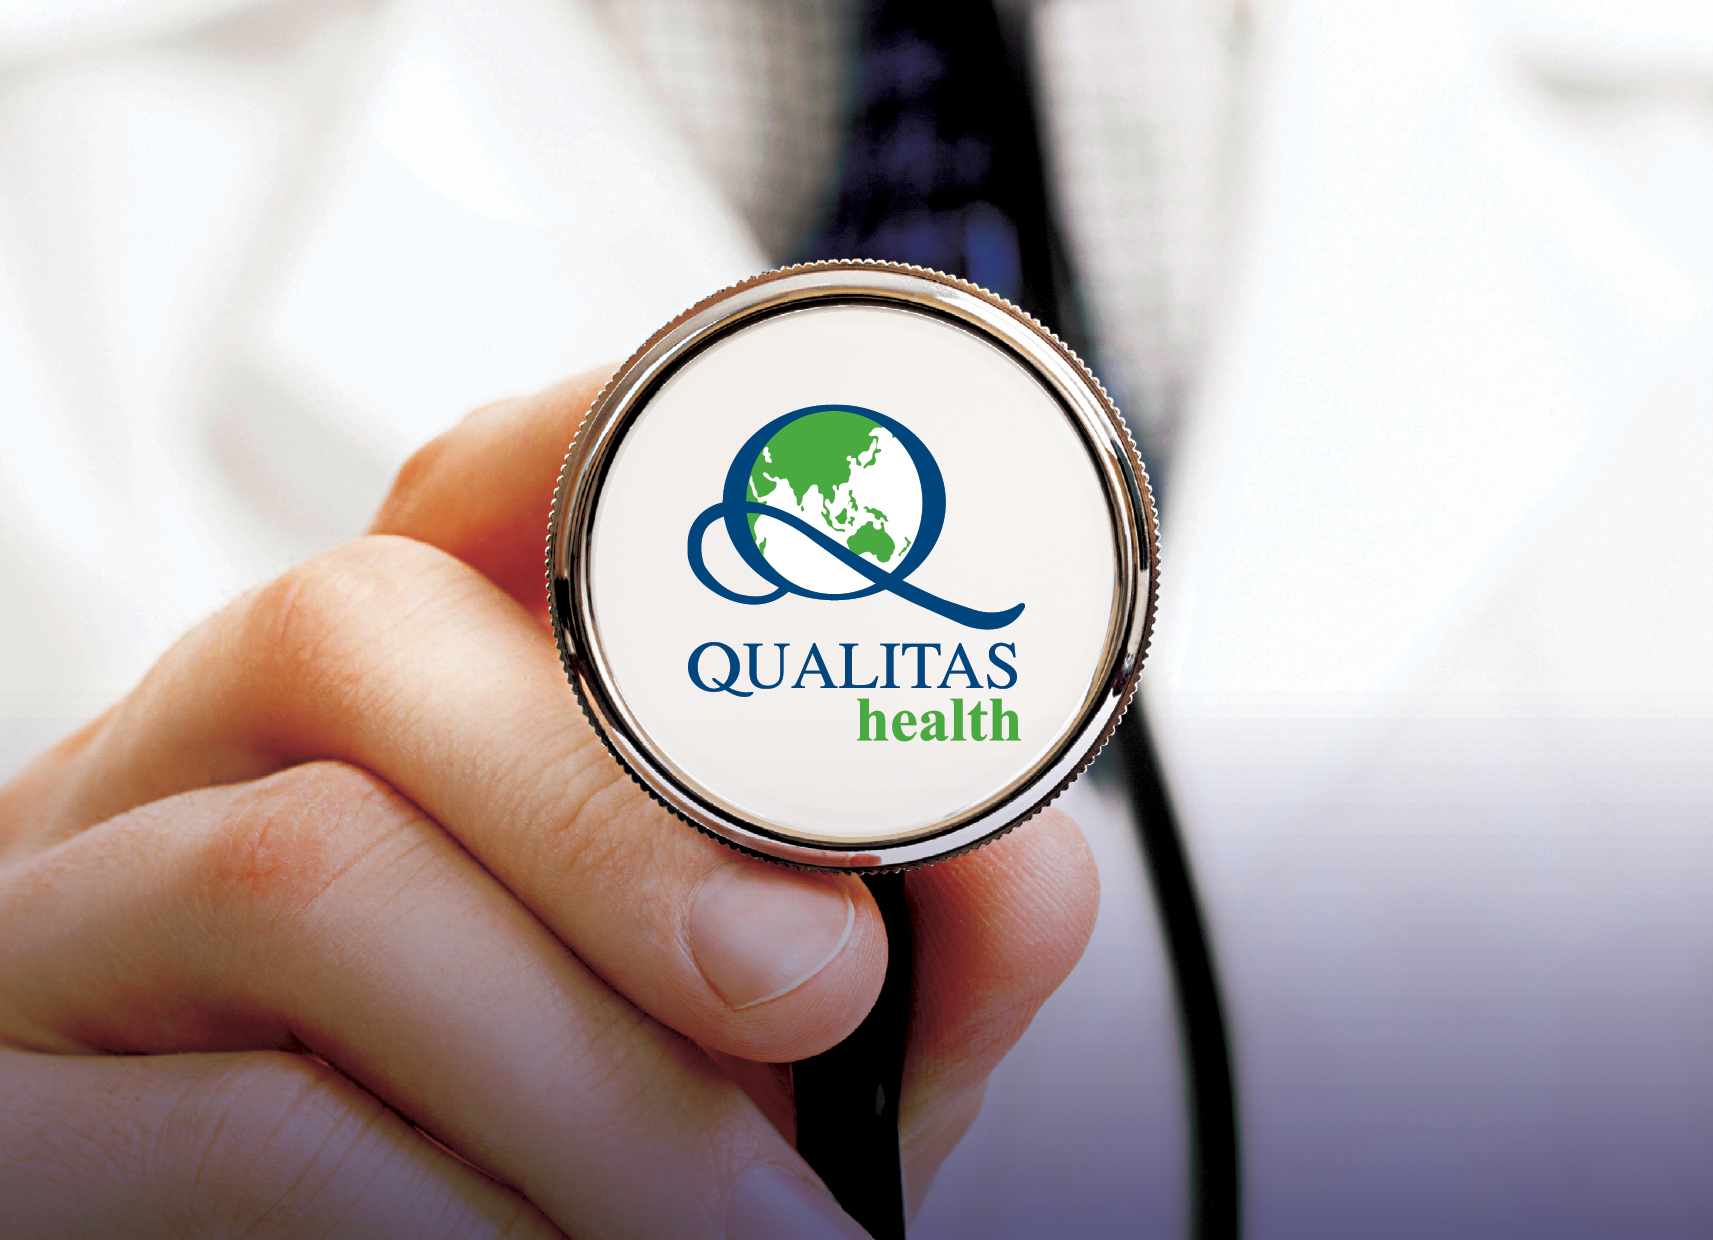 Qualitas Health Image